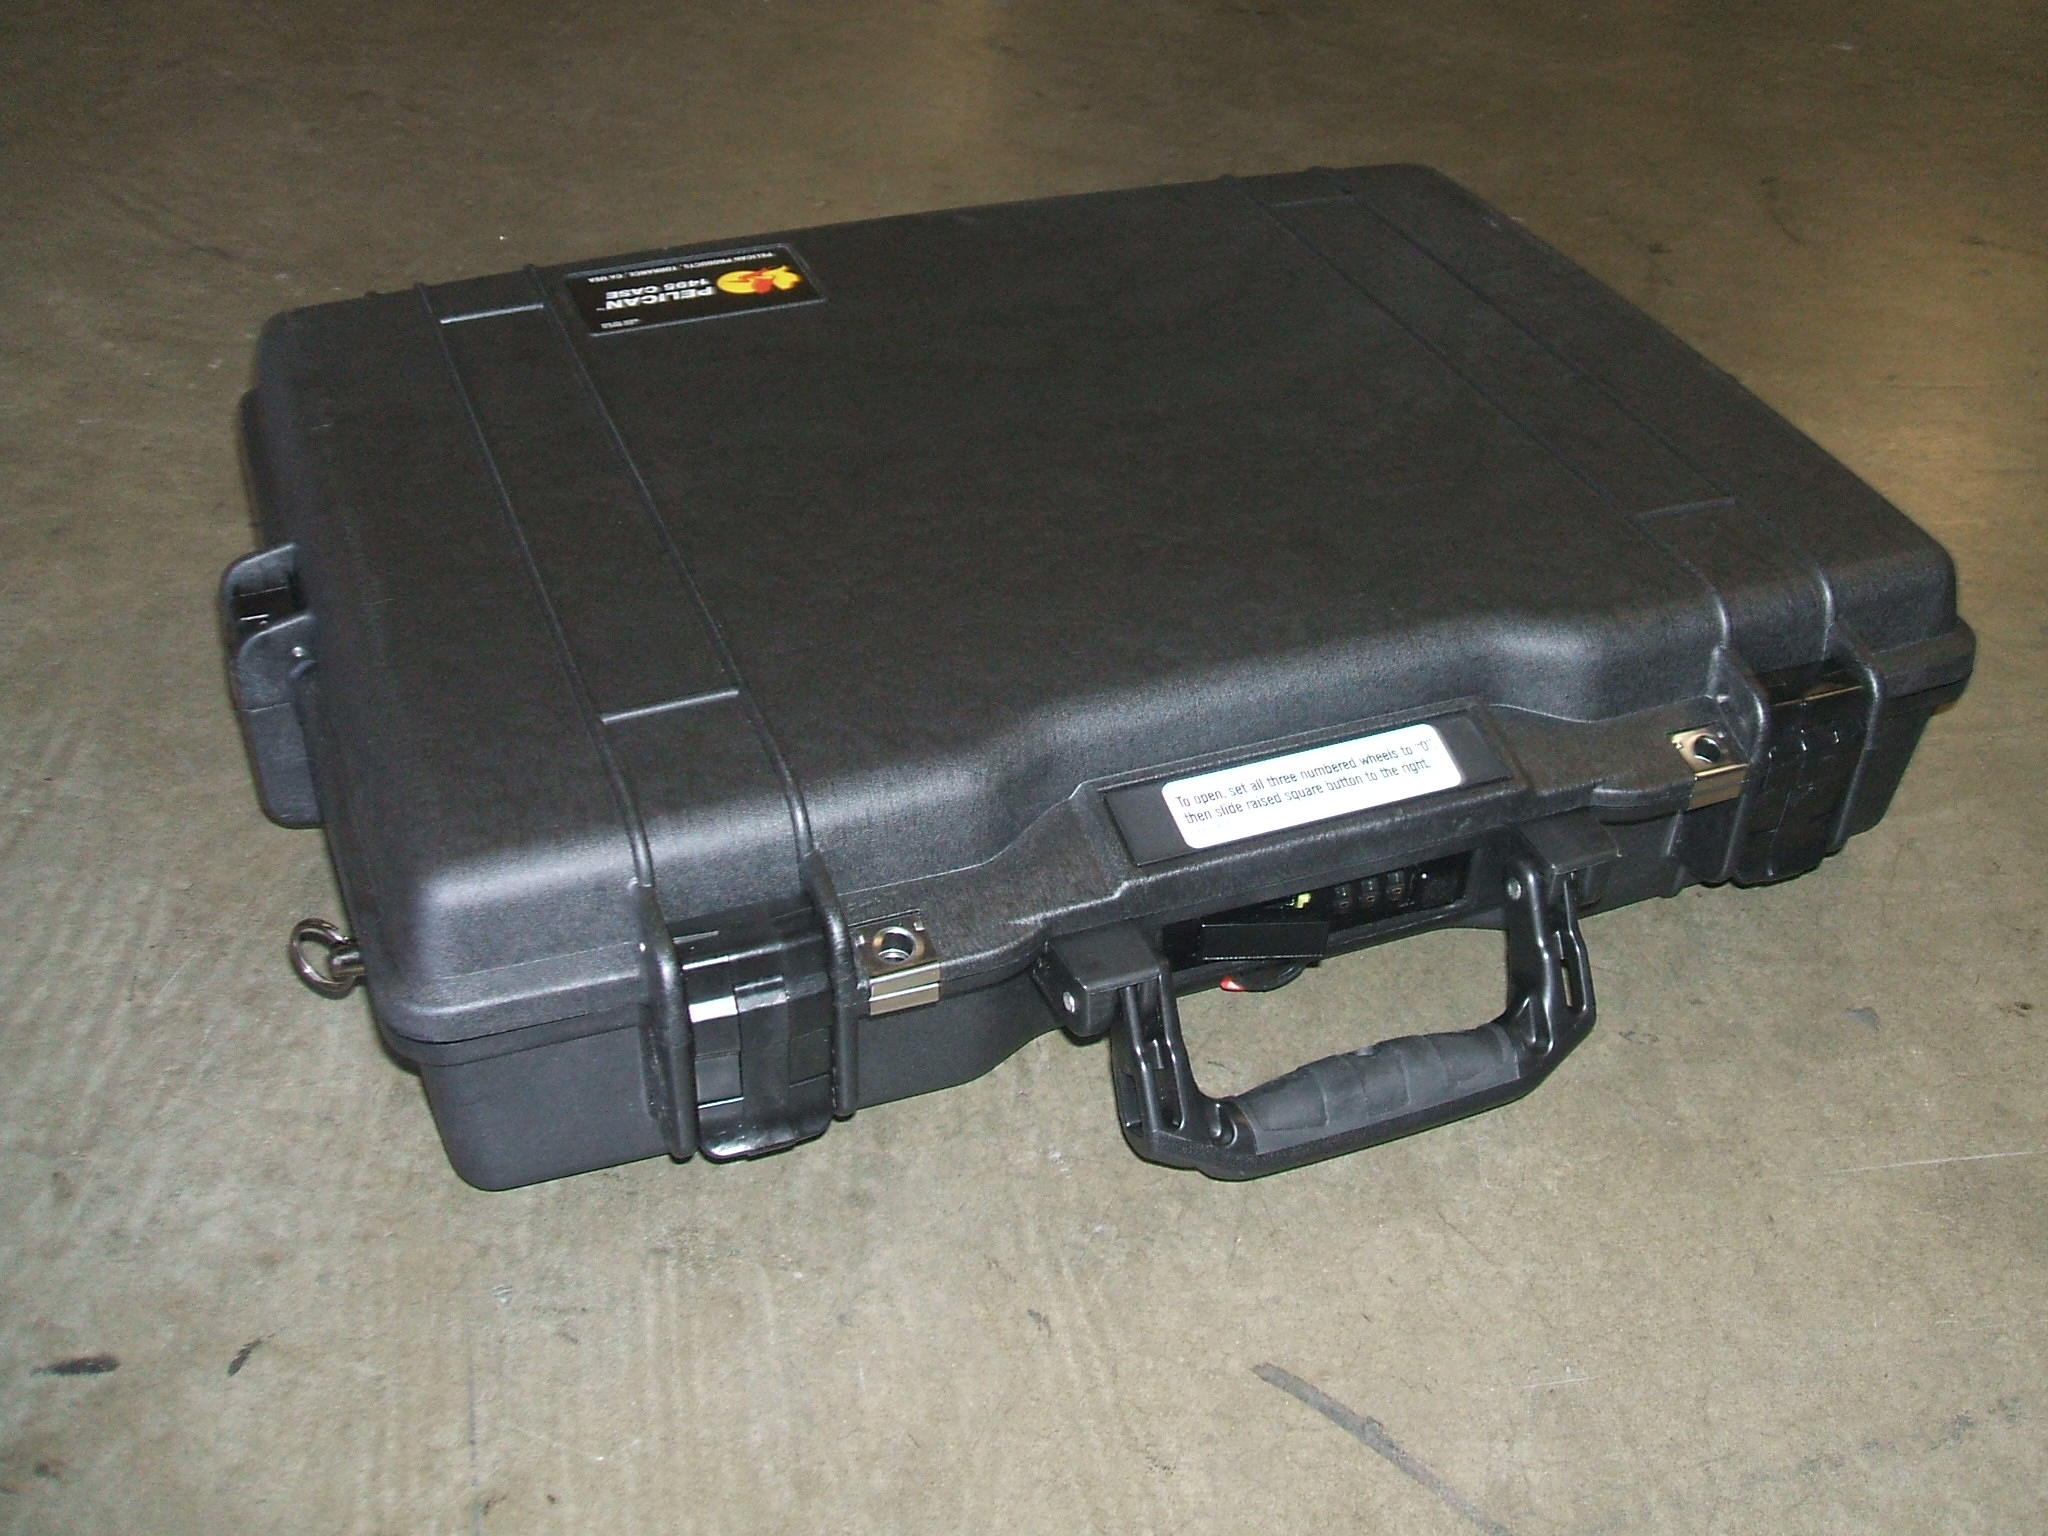 Print # 5905 - Pelican 1495 Case w/ Custom Foam Insert for (1) Dell Spyder Laptop By Nelson Case Corp